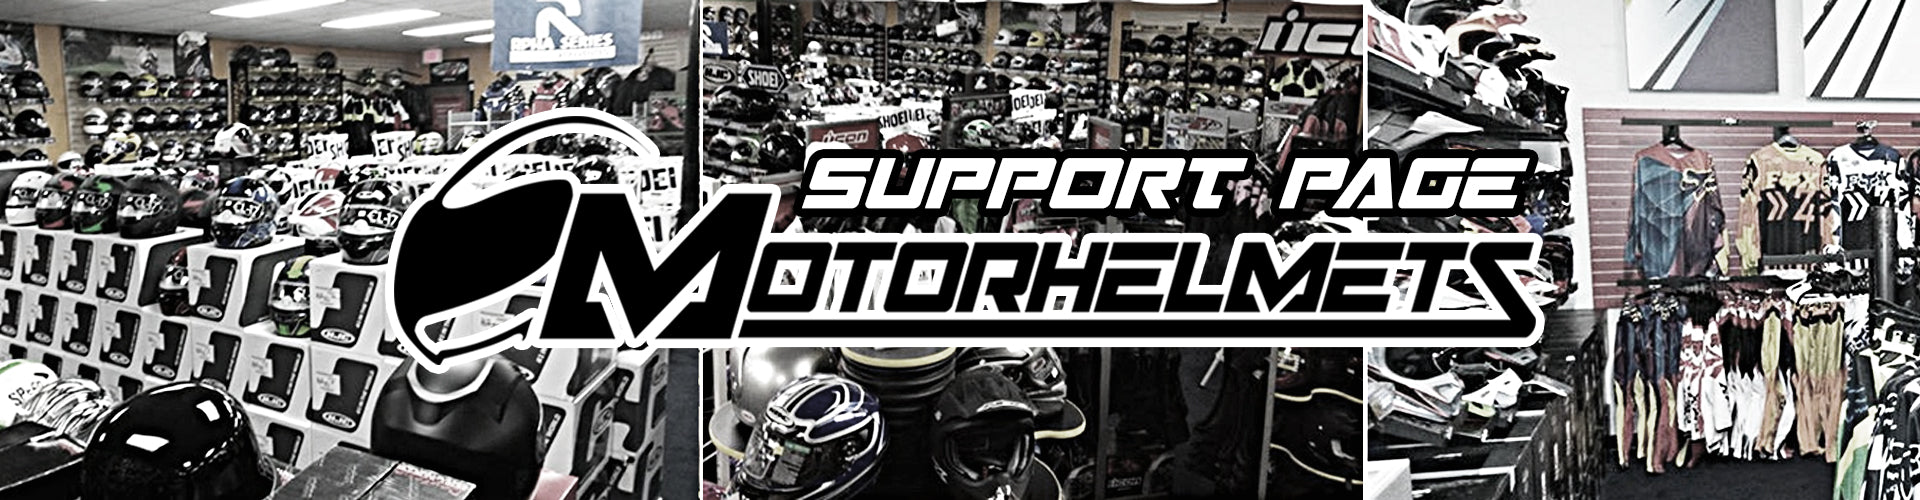 Motohelmets Support Page